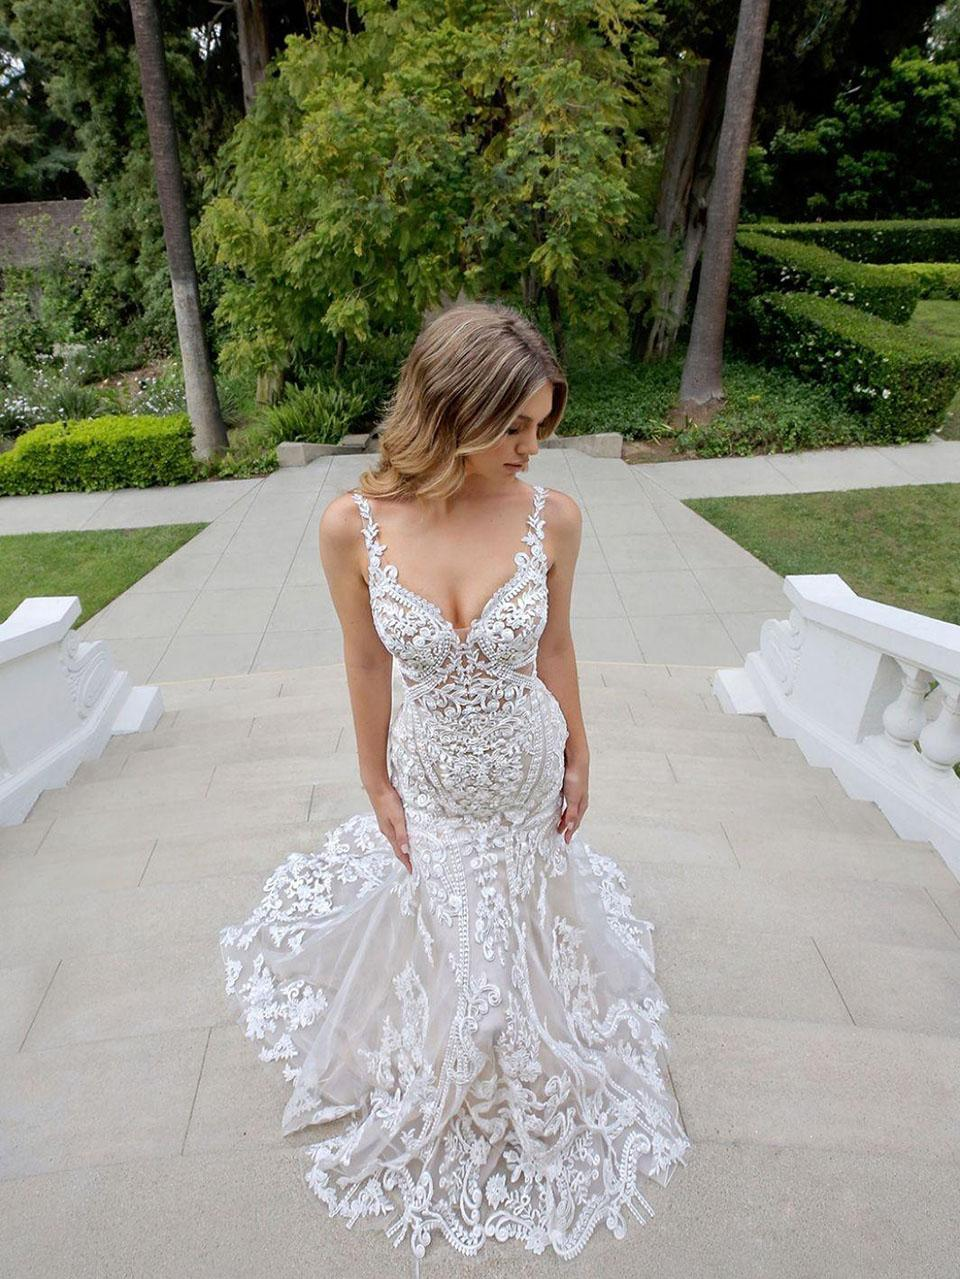 Sexy Spaghetti Open Back Mermaid Plus Size Wedding Dresses Vintage Lace Appliques African Beach Bohemian Bridal Gown Wed Dress Wed